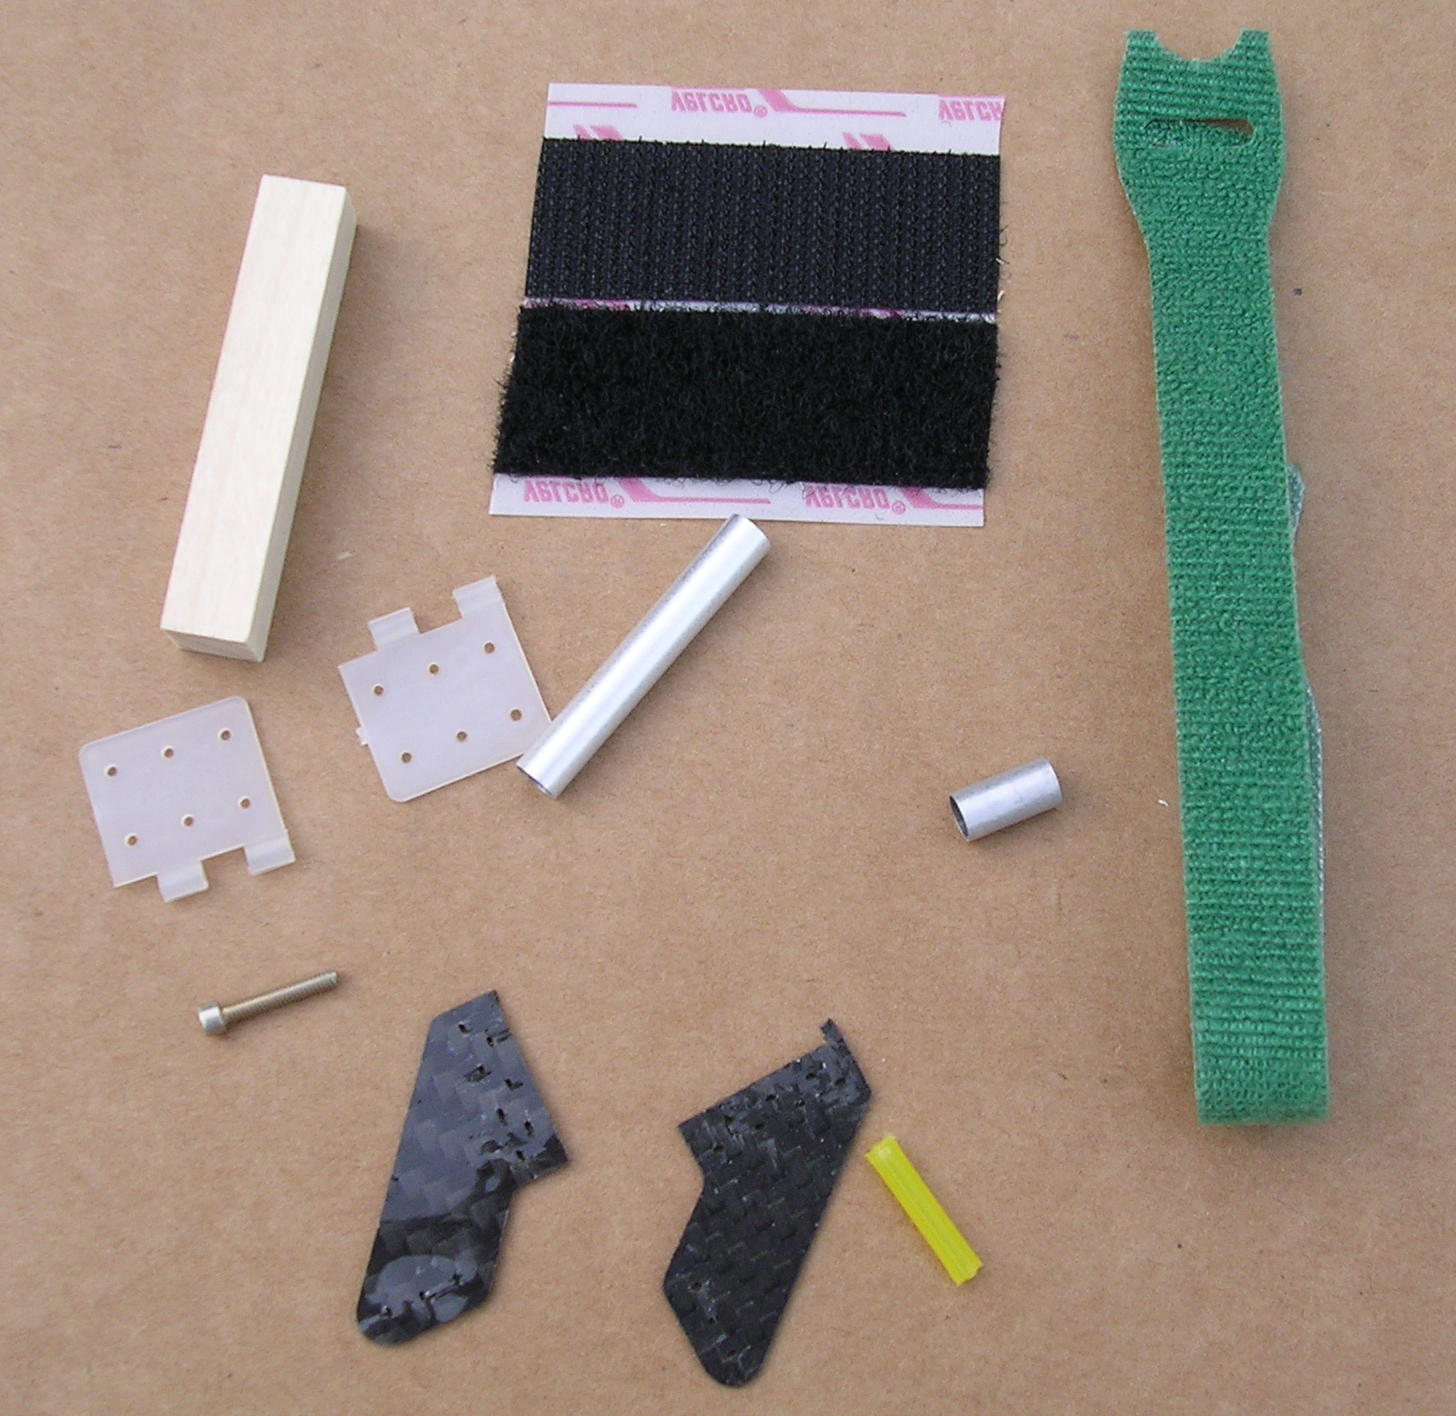 Velcro and other parts for assembly.